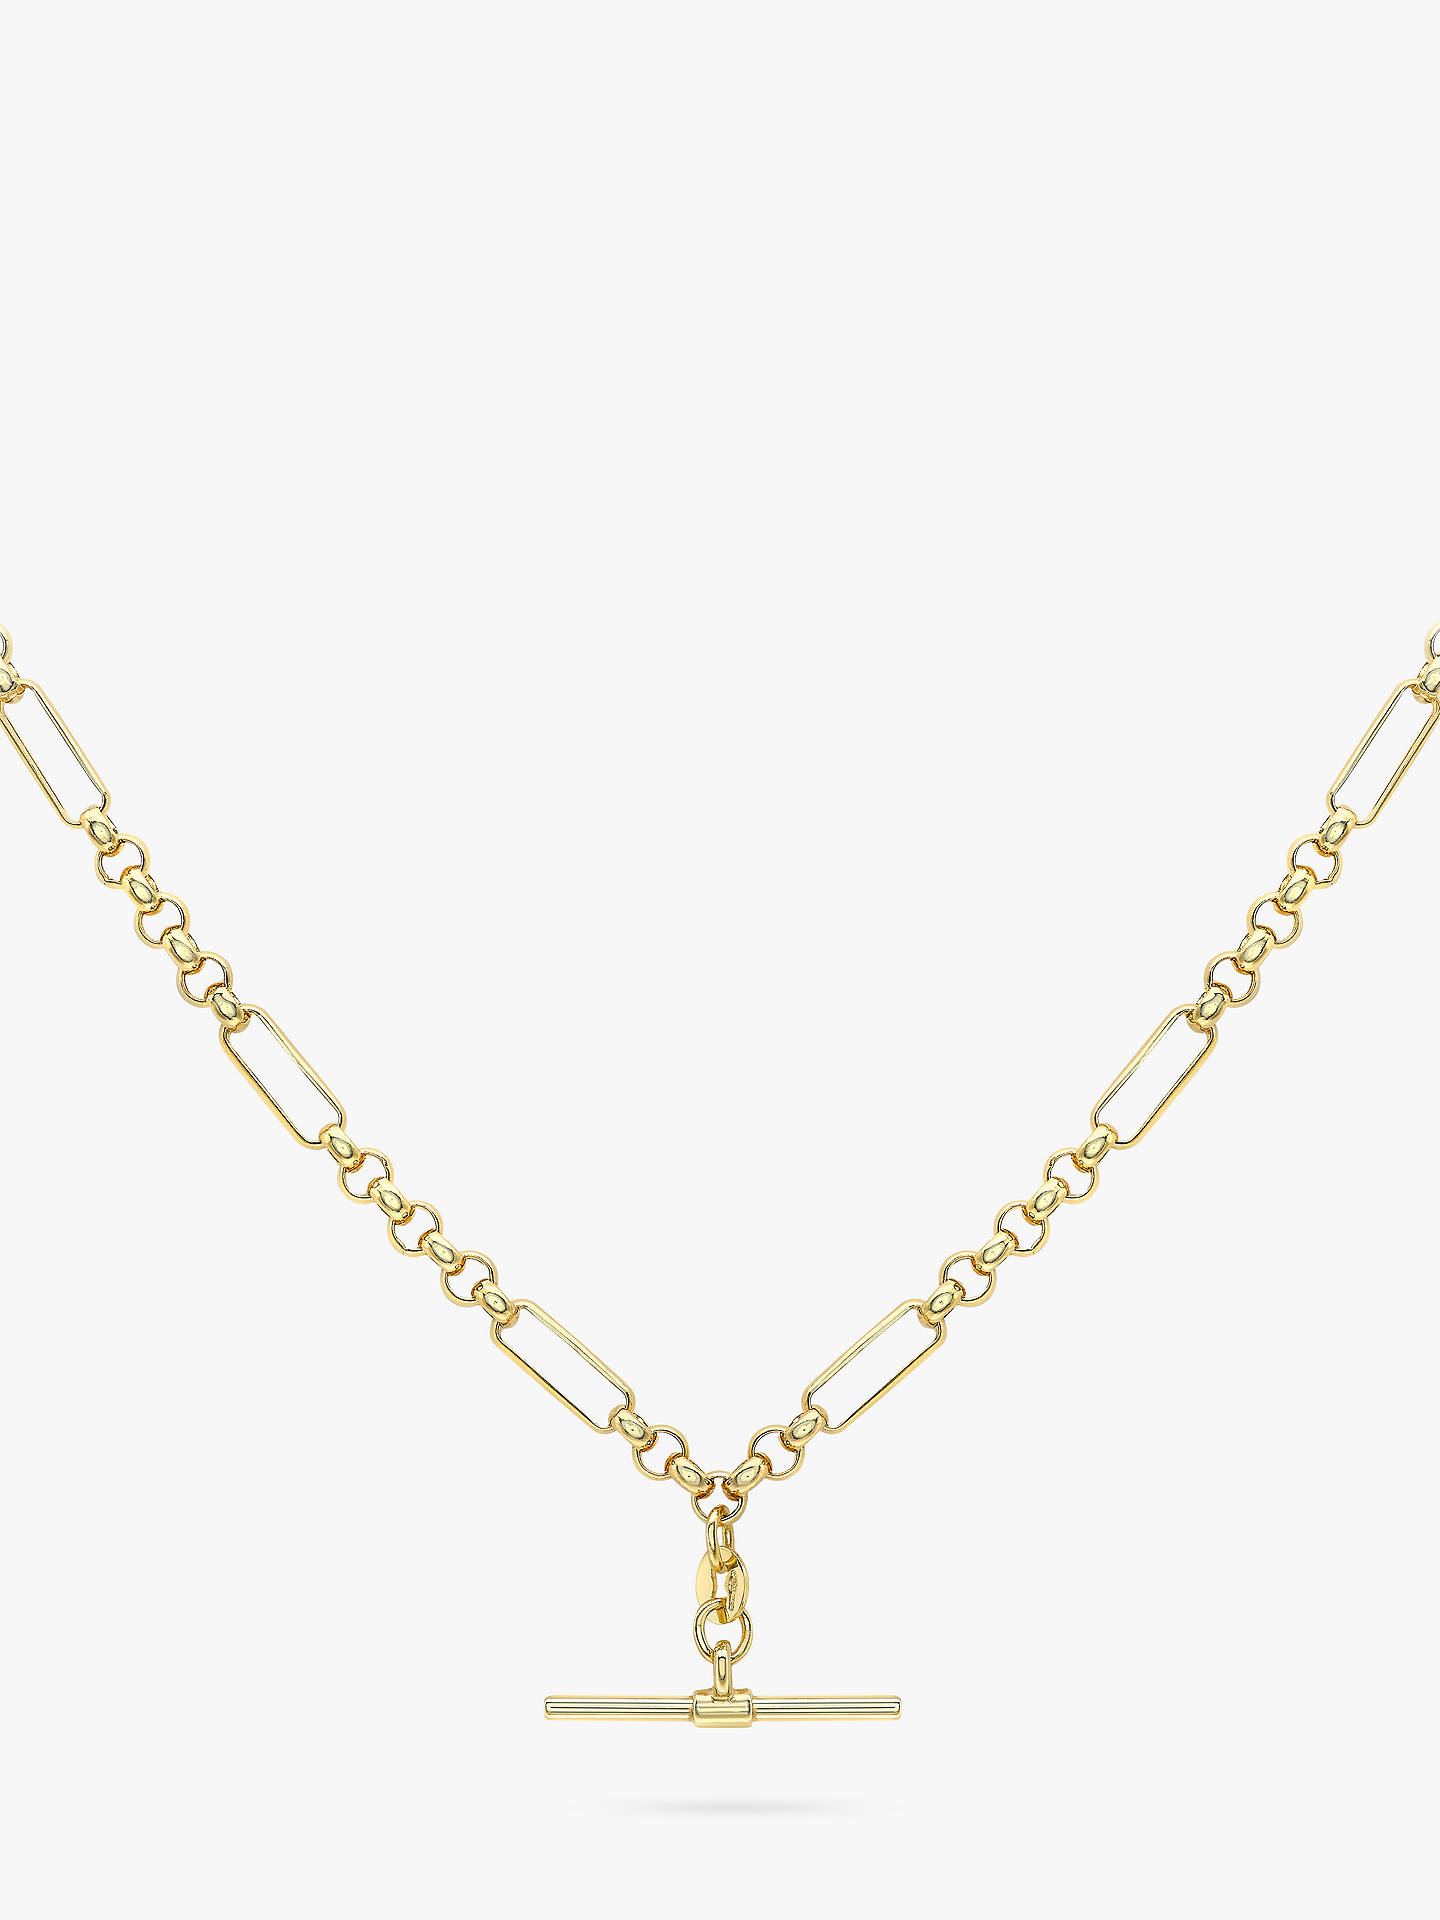 69bdb3532e58f IBB 9ct Gold T-Bar Figaro Chain Necklace, Gold